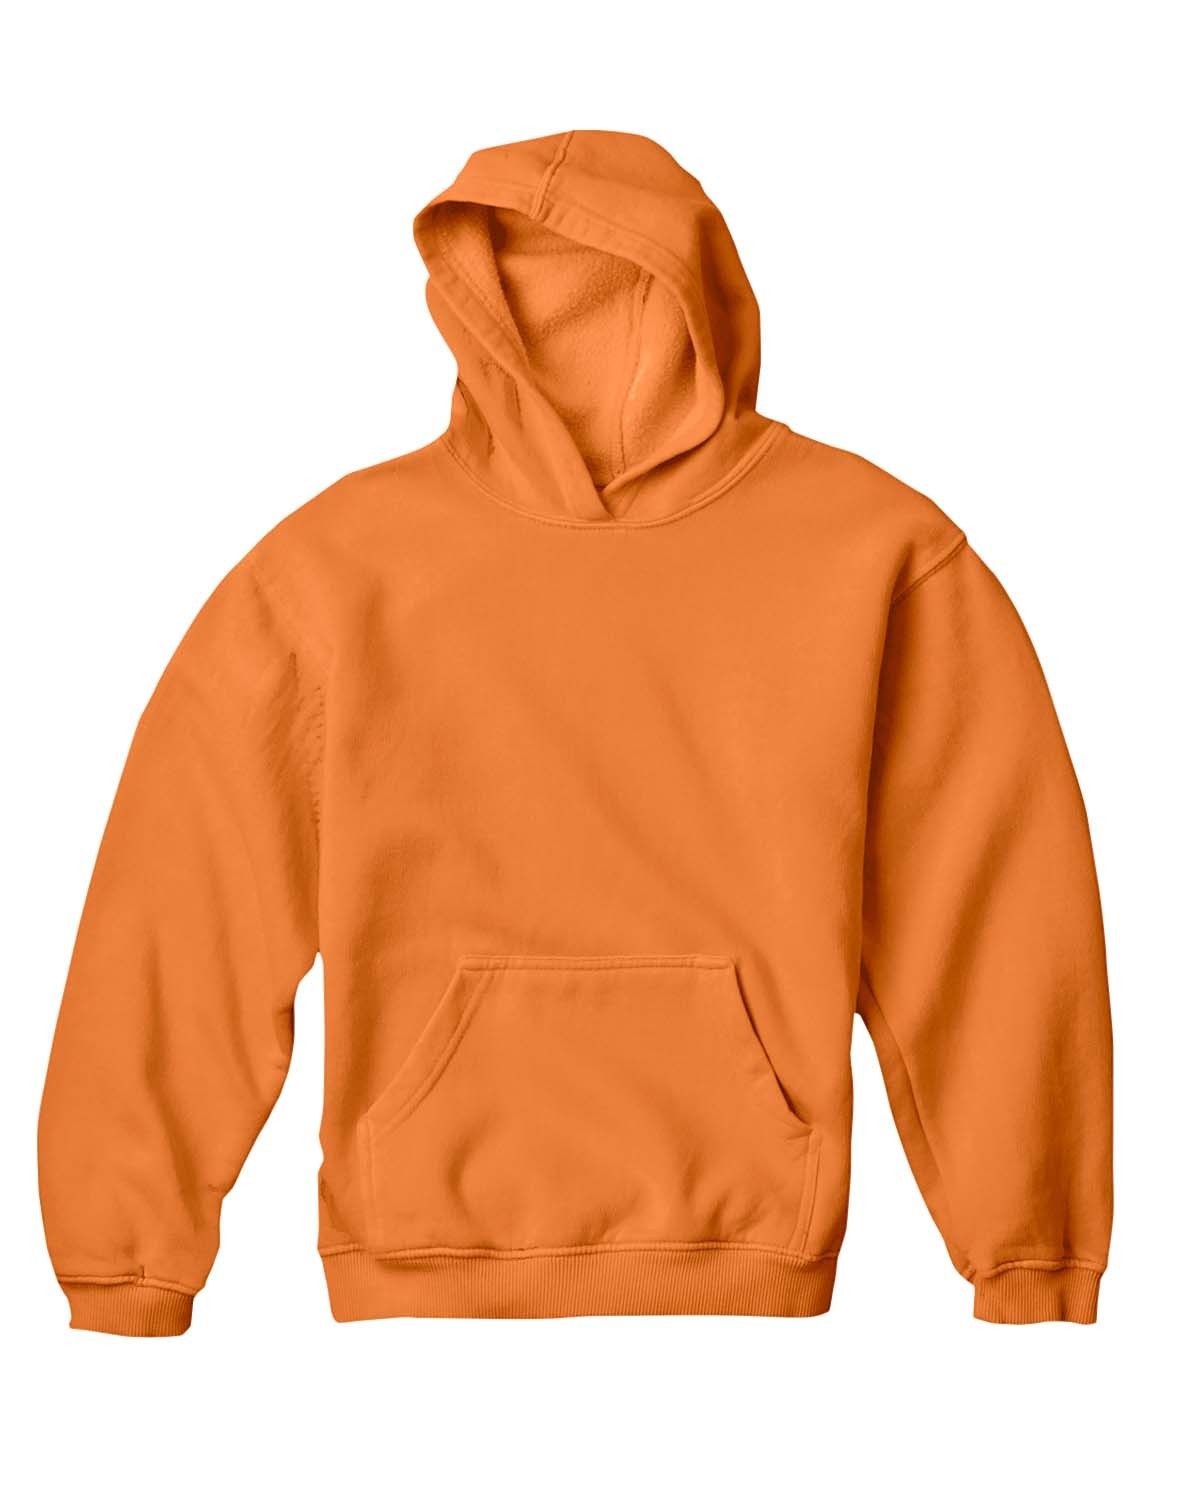 C8755 Comfort Colors Drop Ship BURNT ORANGE